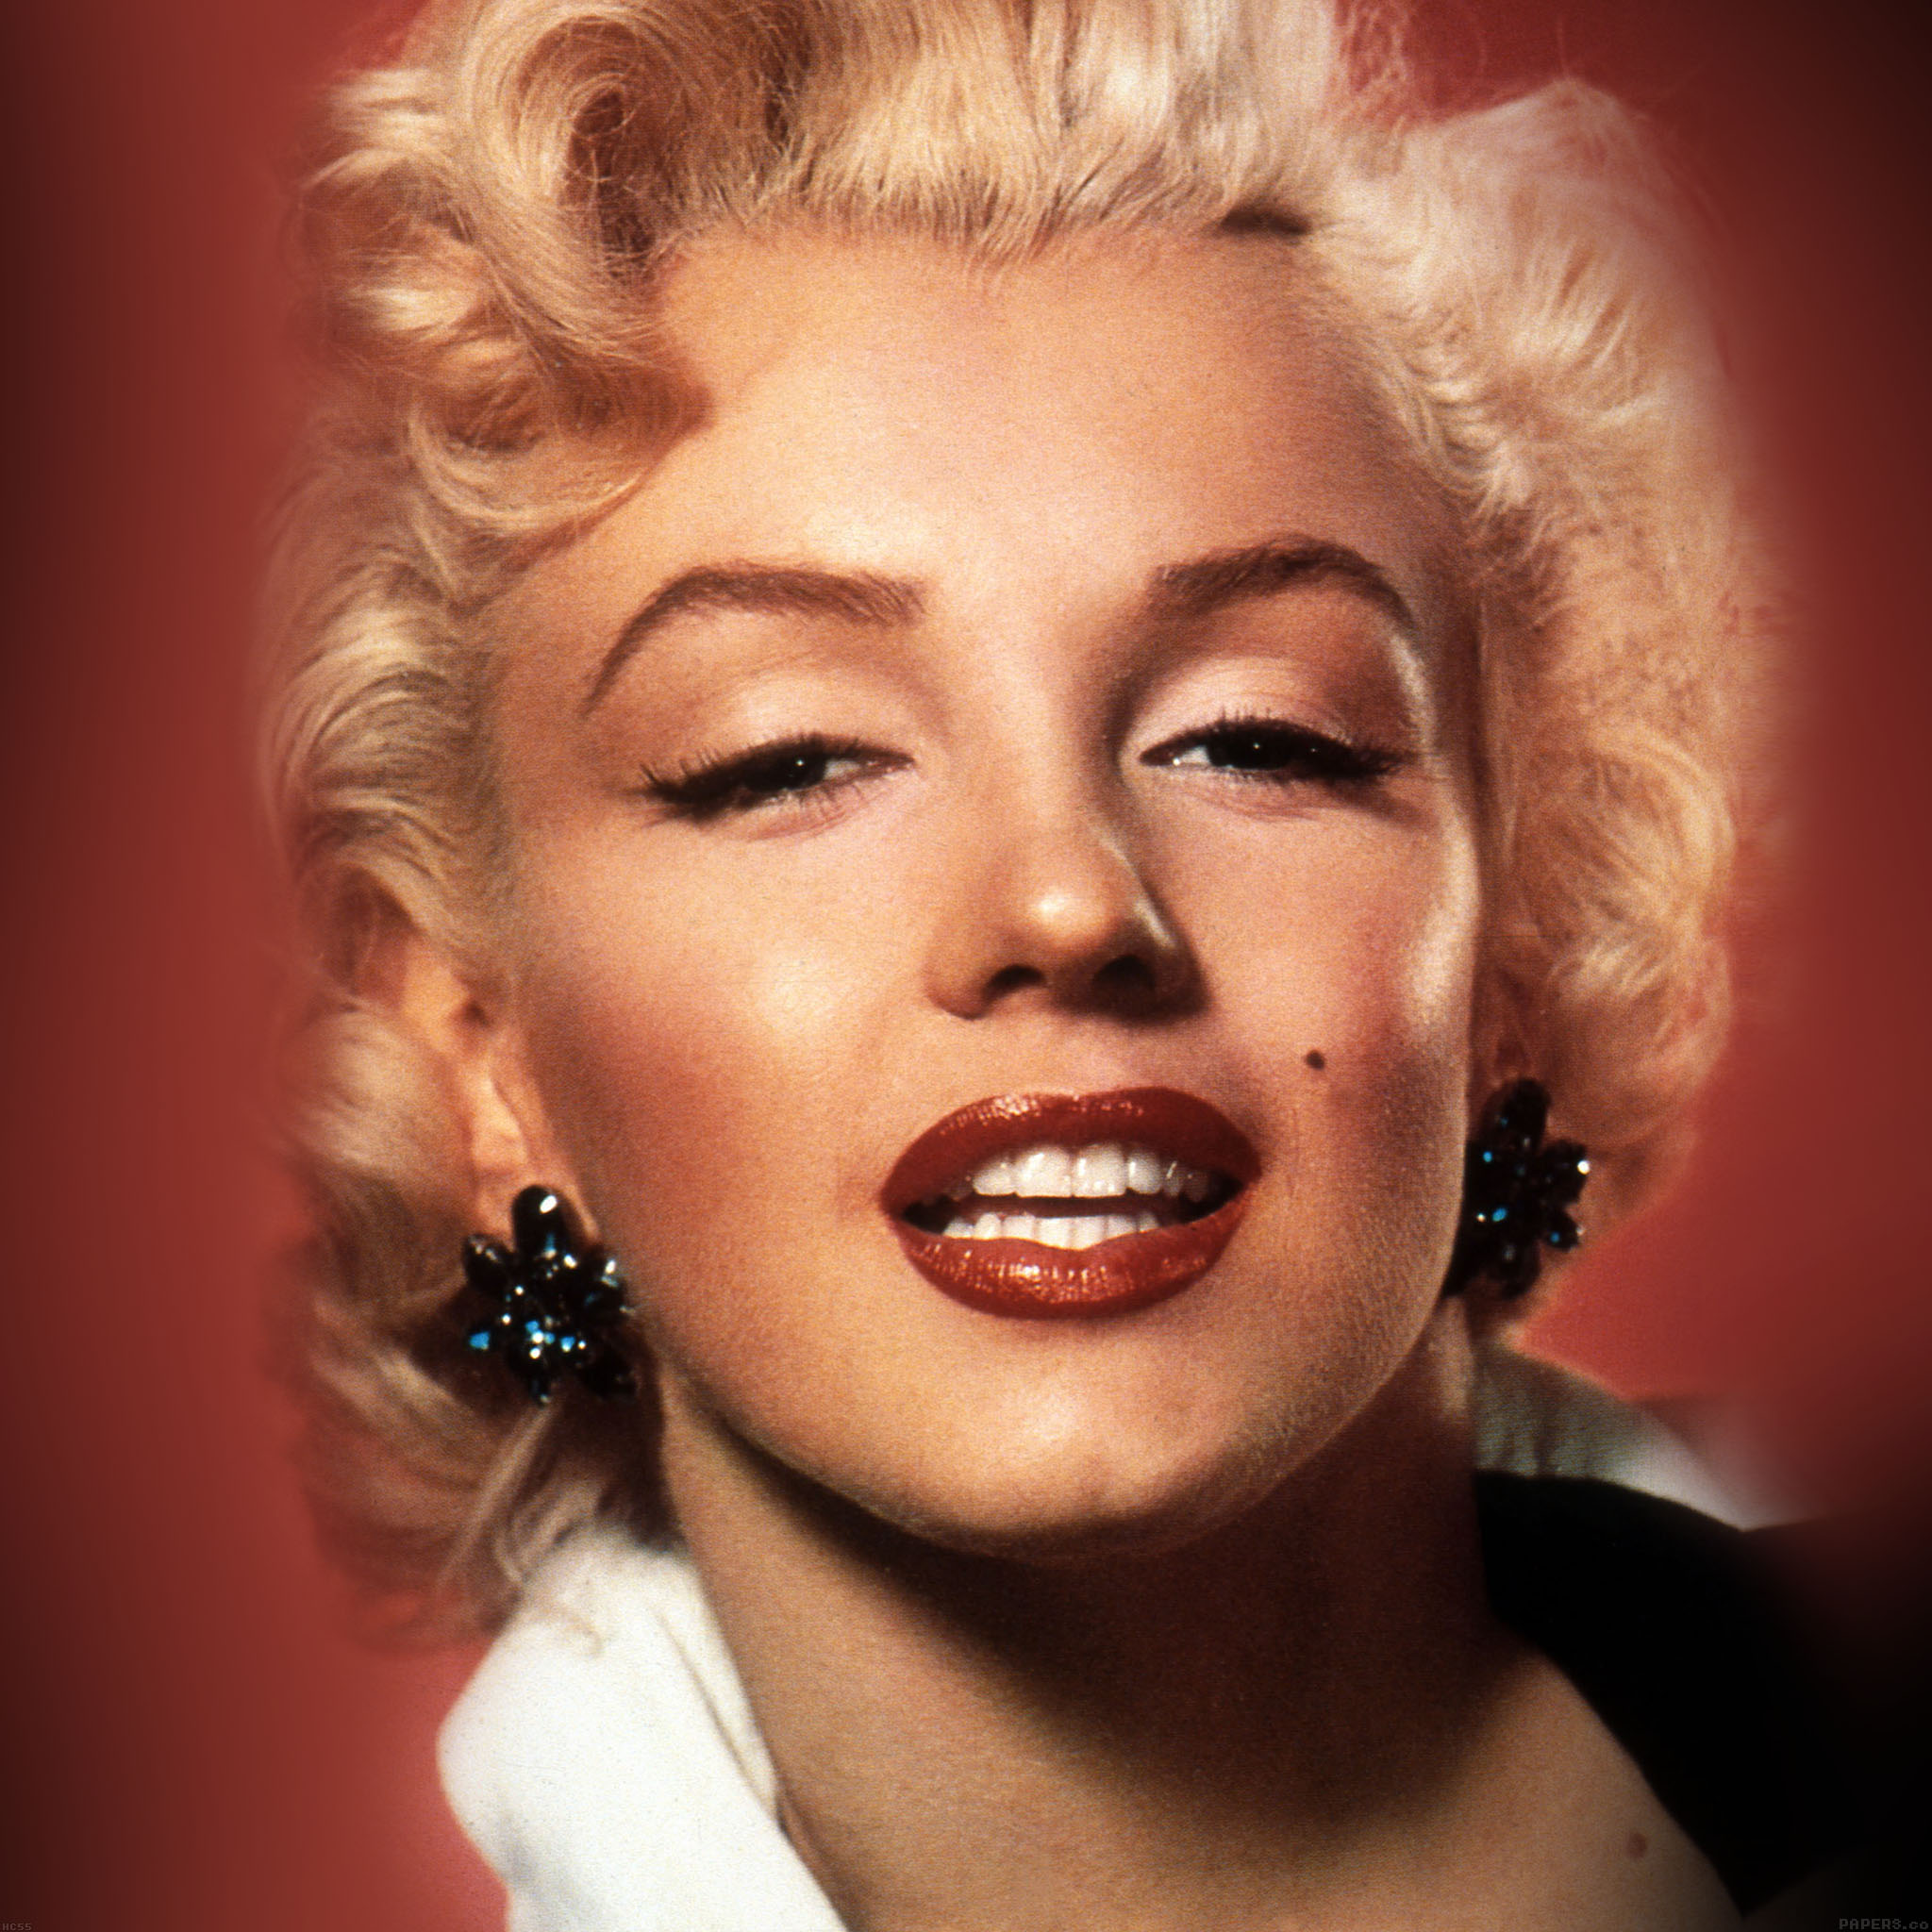 marilyn monroe 7 page essay Marilyn monroe essays: order plagiarism free custom written essay then she changed her name to marilyn monroe marilyn for the musical star marilyn miller and.